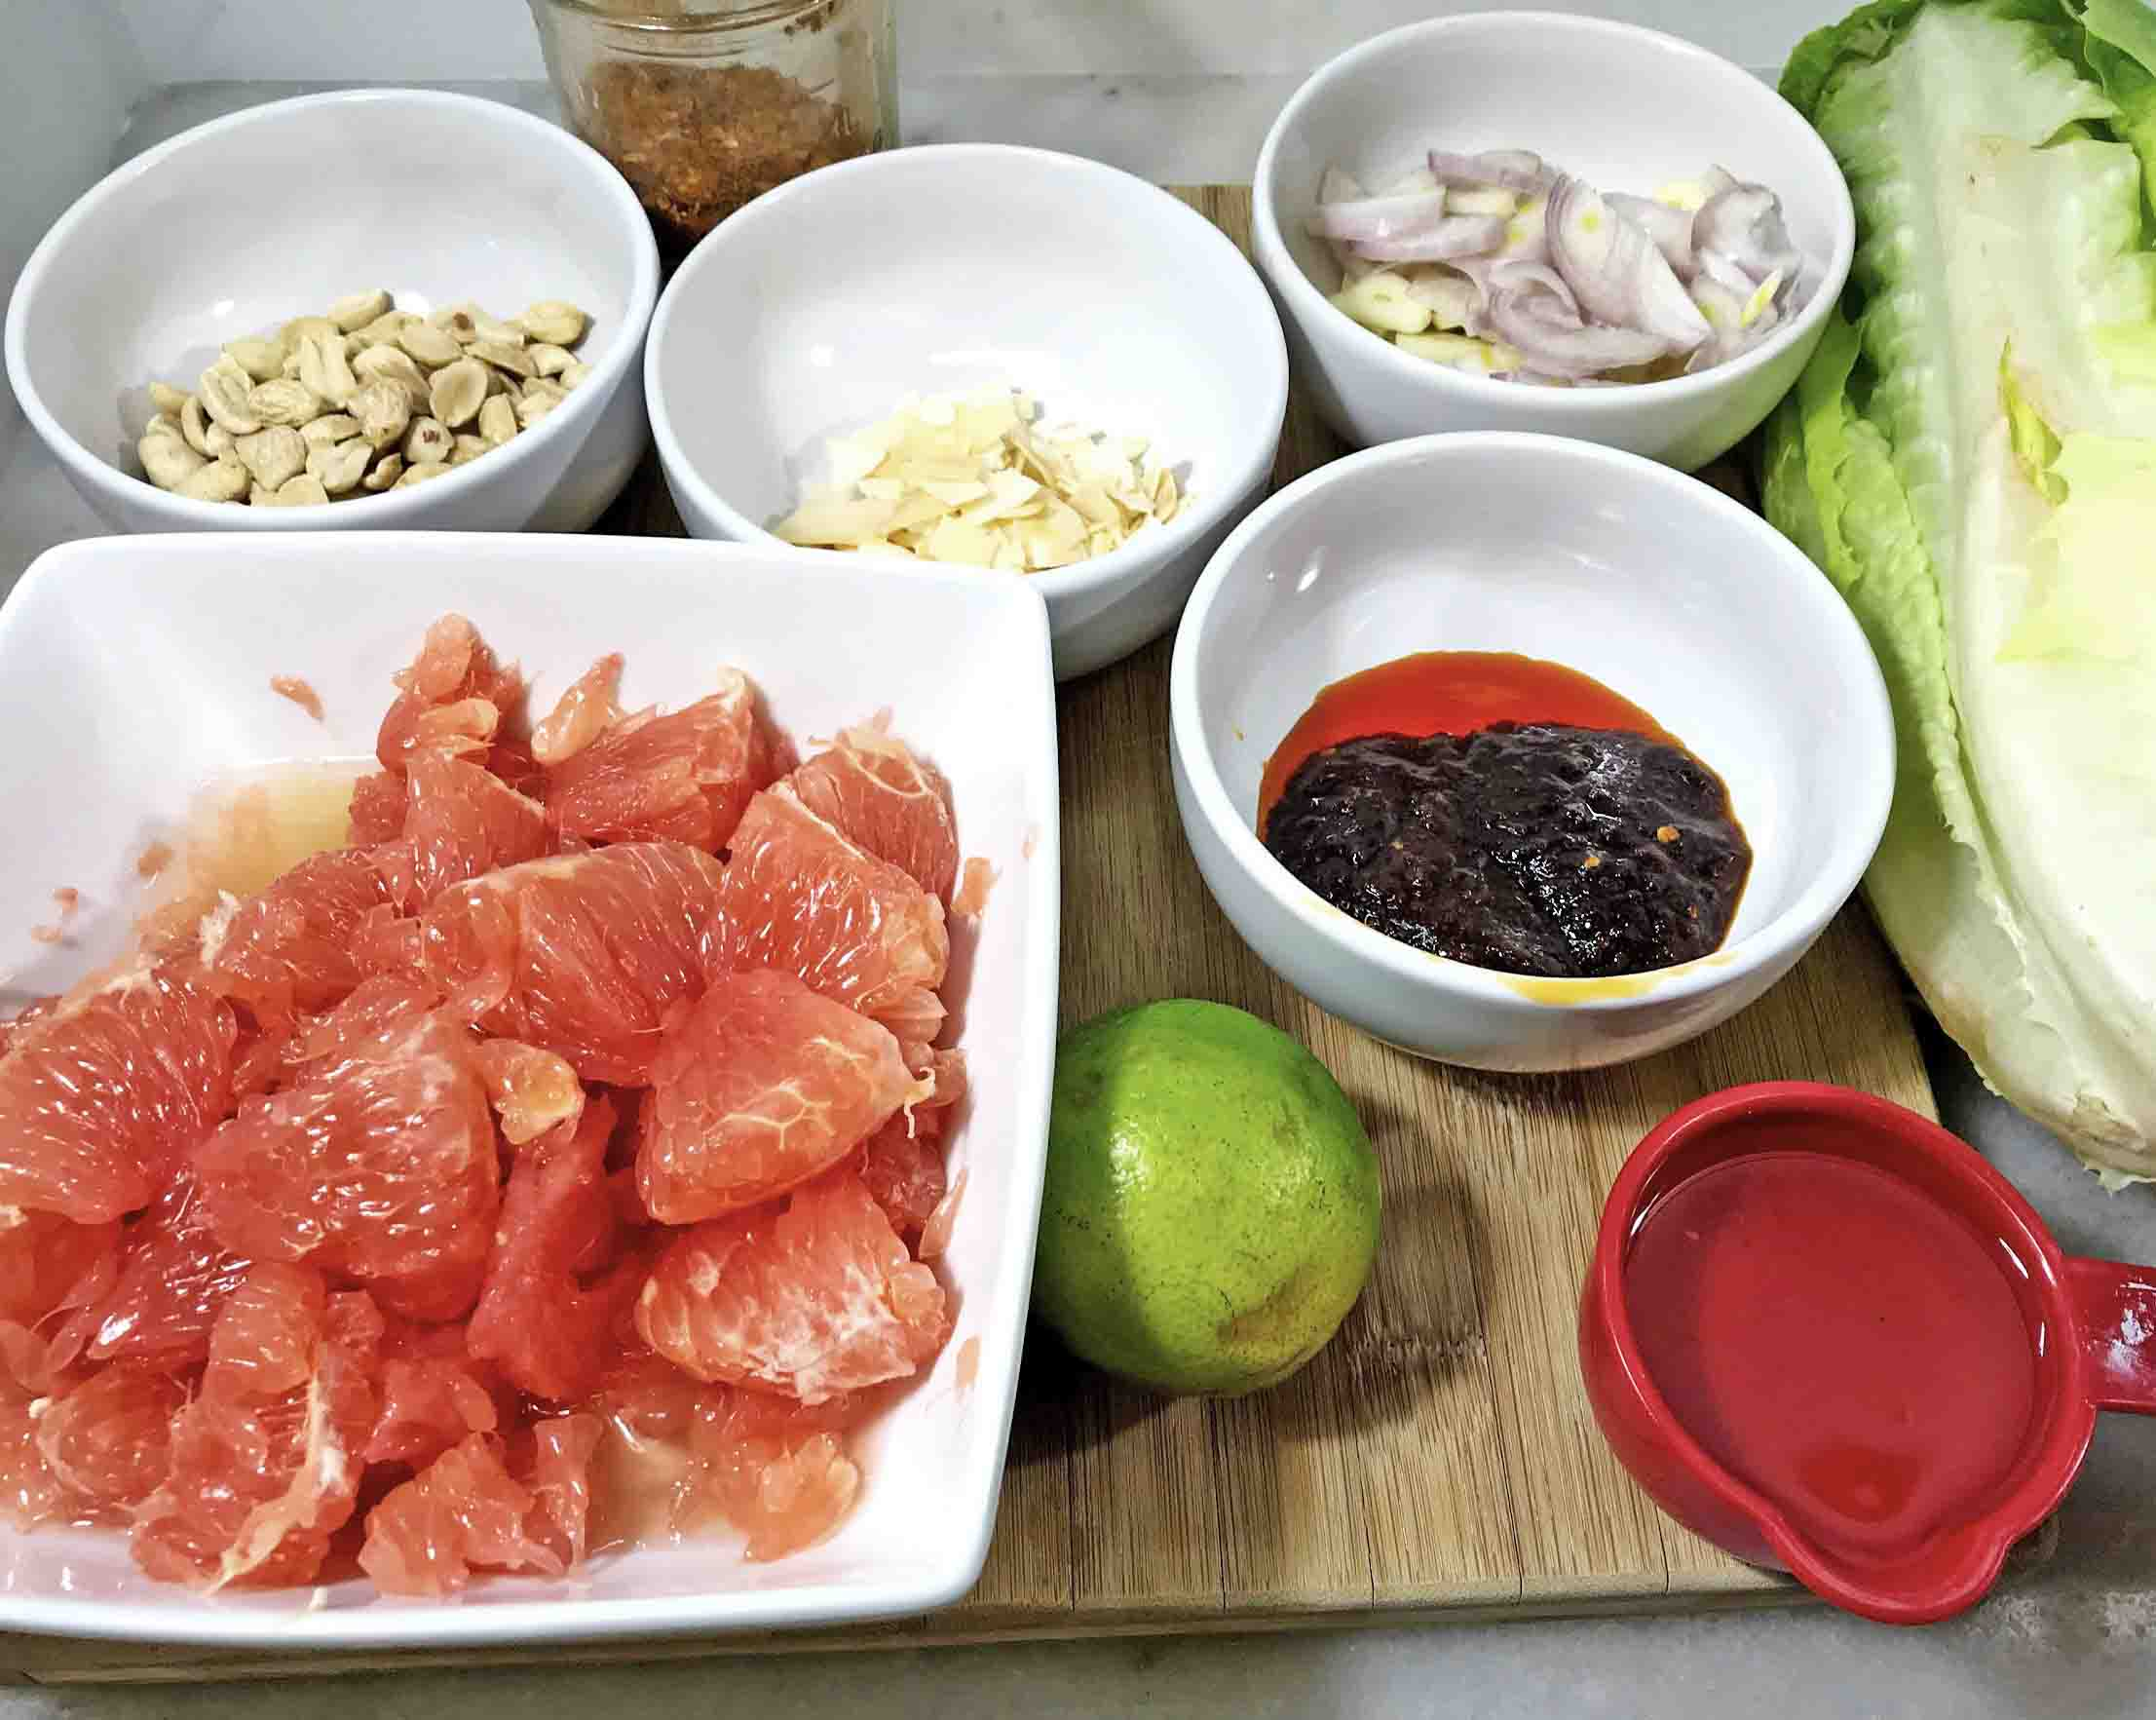 Pomelo Grapefruit Lettuce Wraps Ingredients